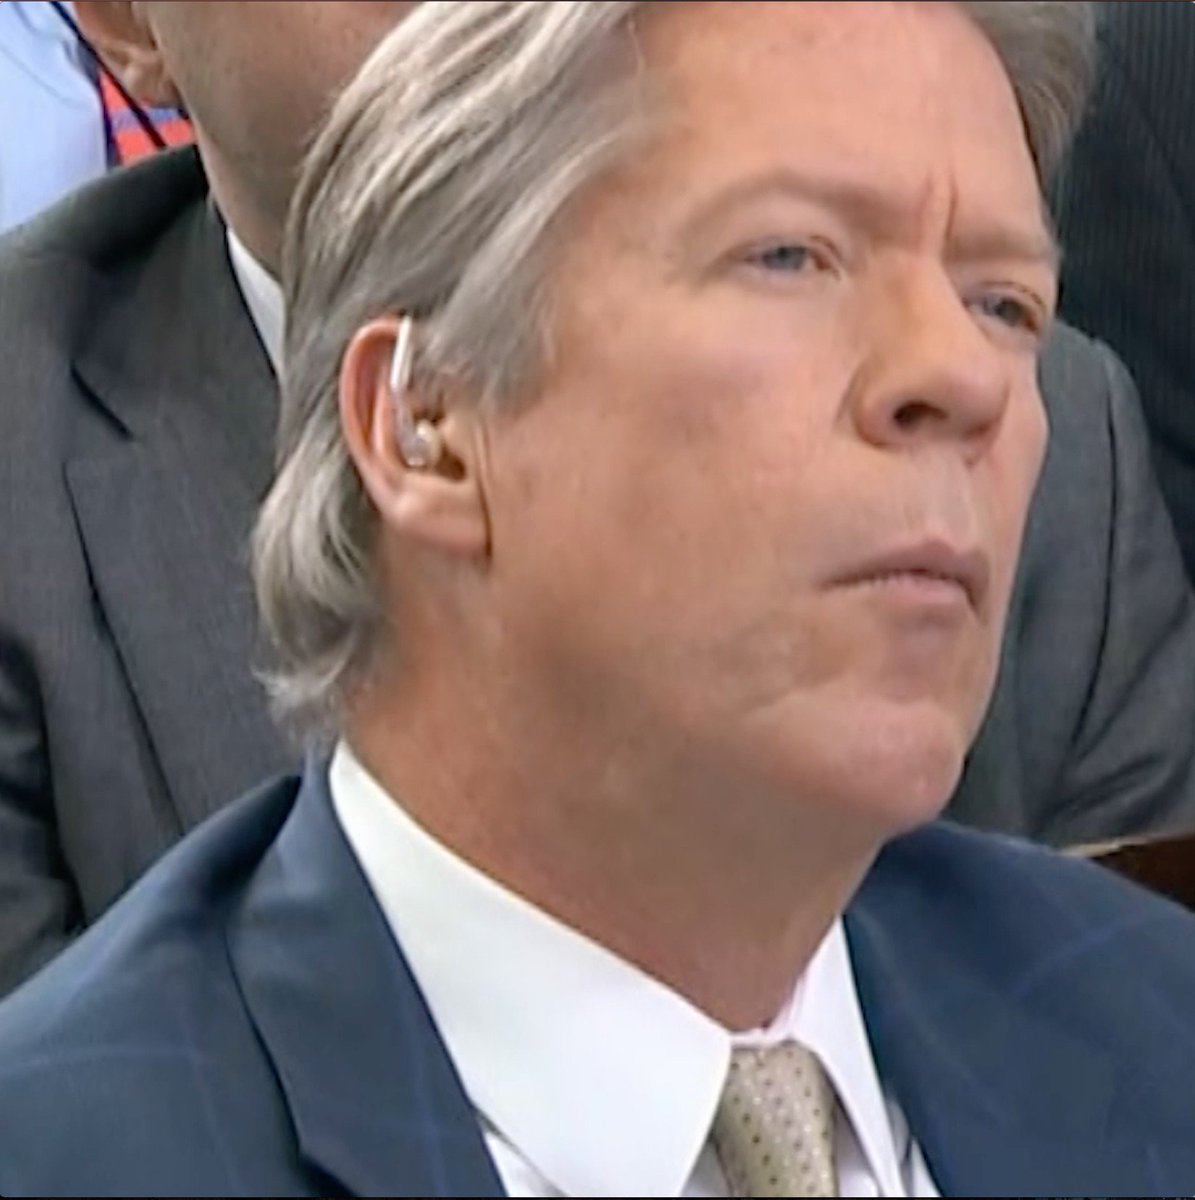 TFW you're listening to Sean Spicer